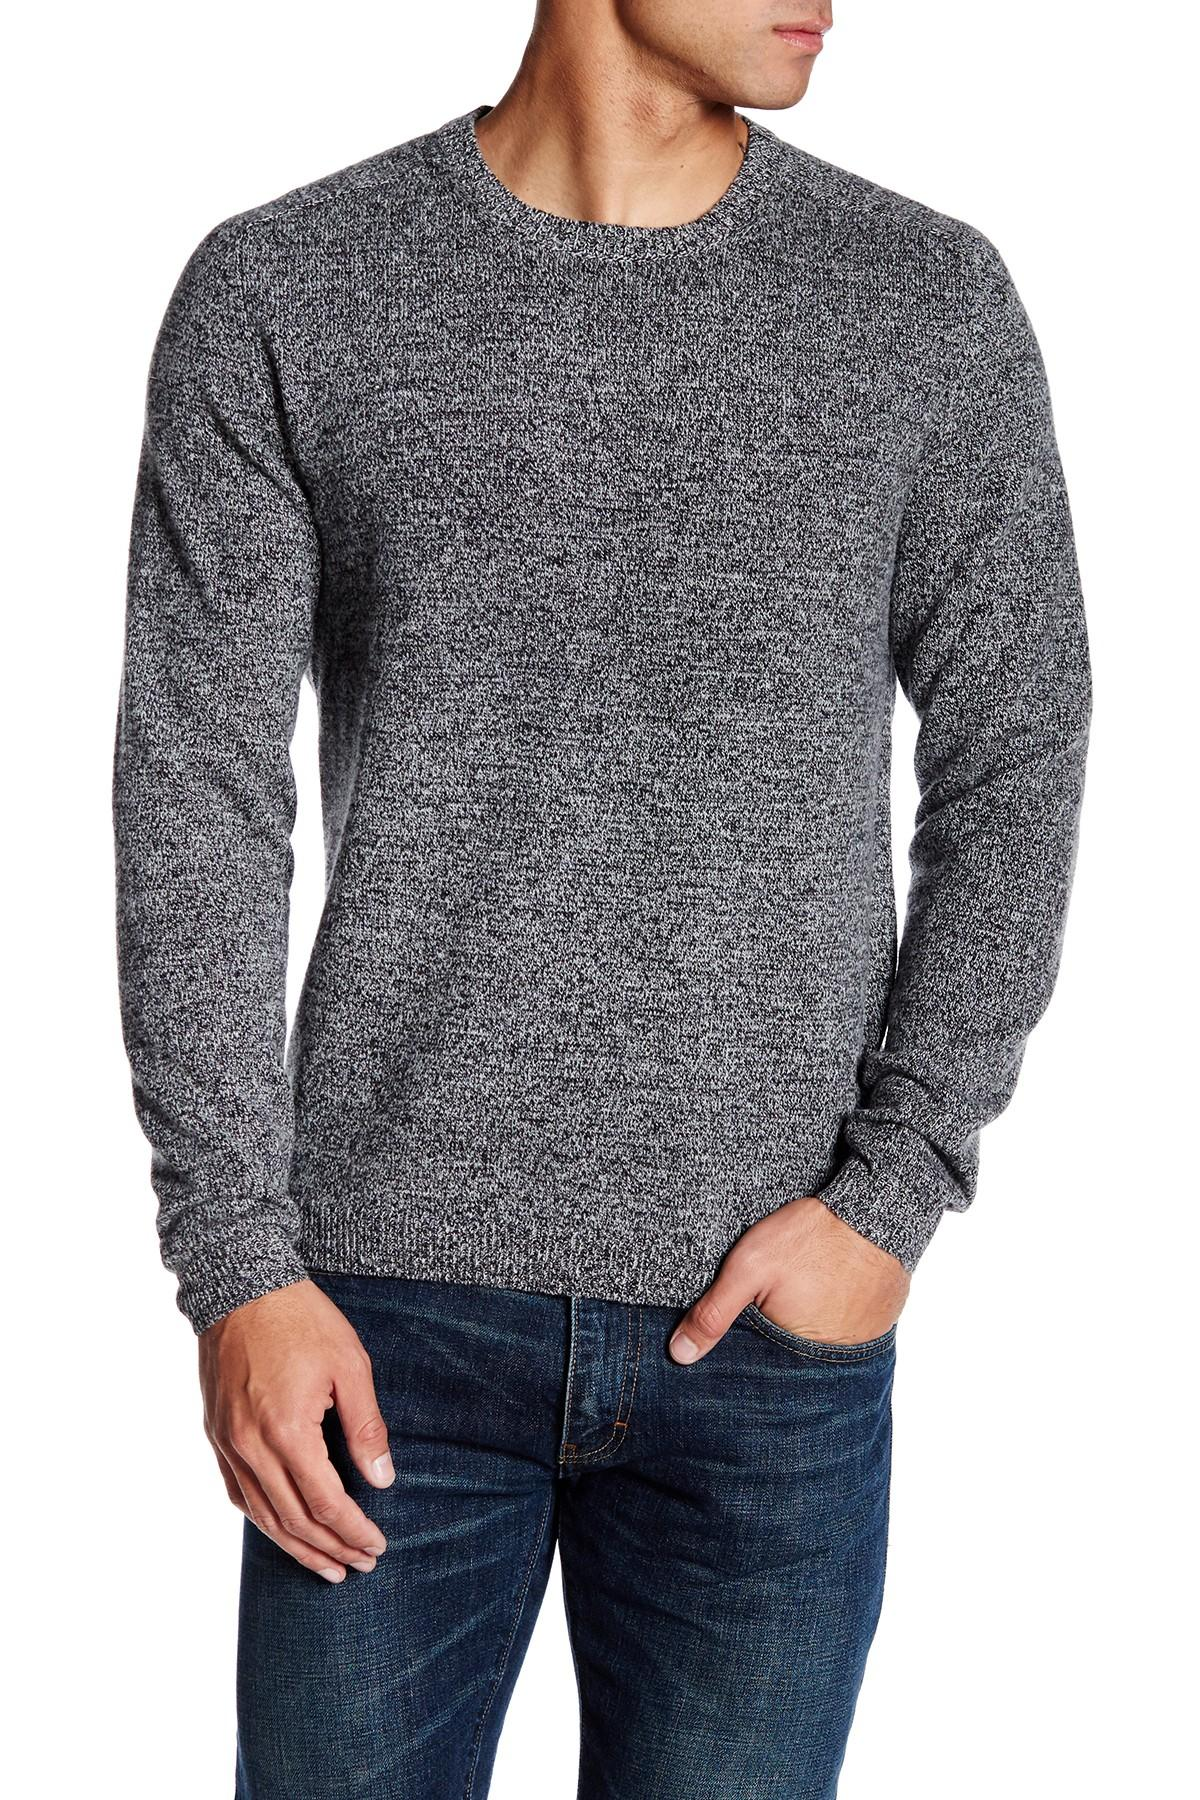 Slate And Stone Clothing : Lyst slate stone melange sweater in gray for men